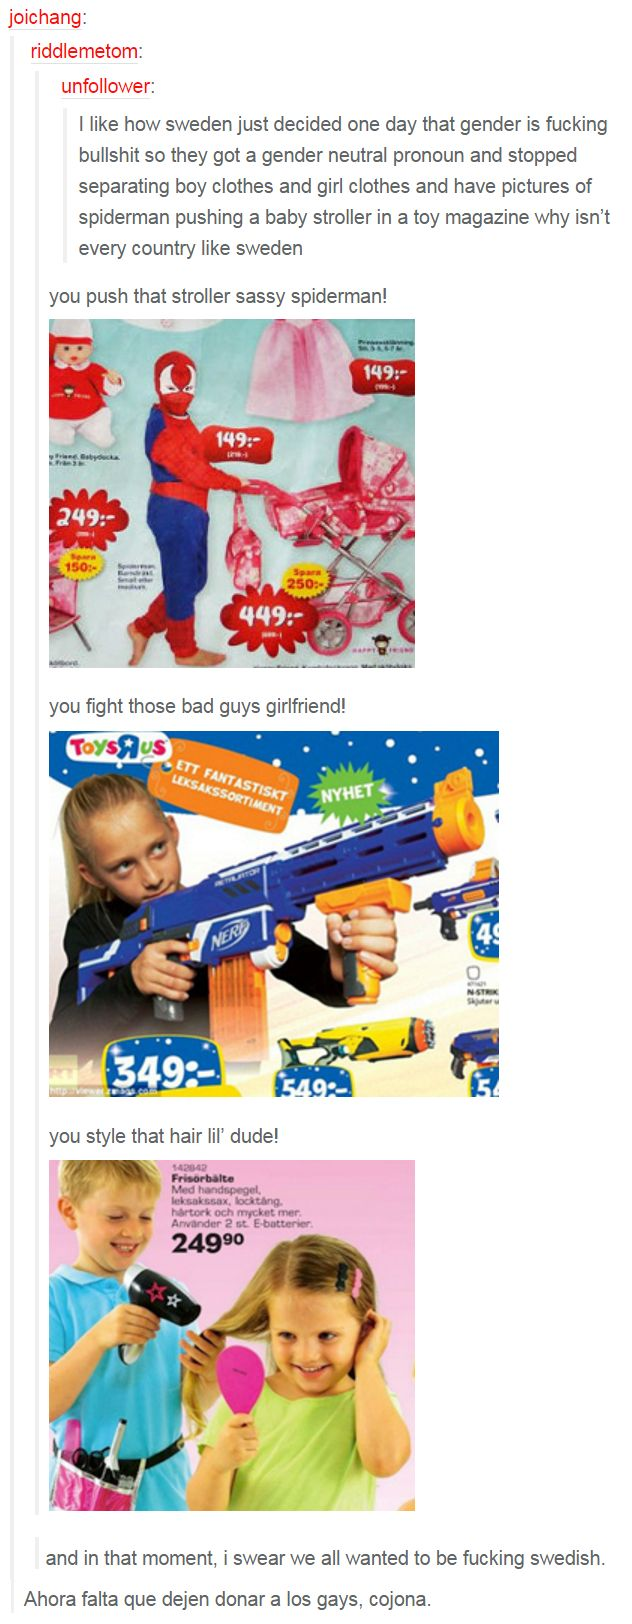 I like how sweden just decided one day that gender is fucking bullshit so they got a gender neutral pronoun and stopped separating boy clothes and girl clothes and have pictures of spiderman pushing a baby stroller in a toy magazine why isn't every country like sweden